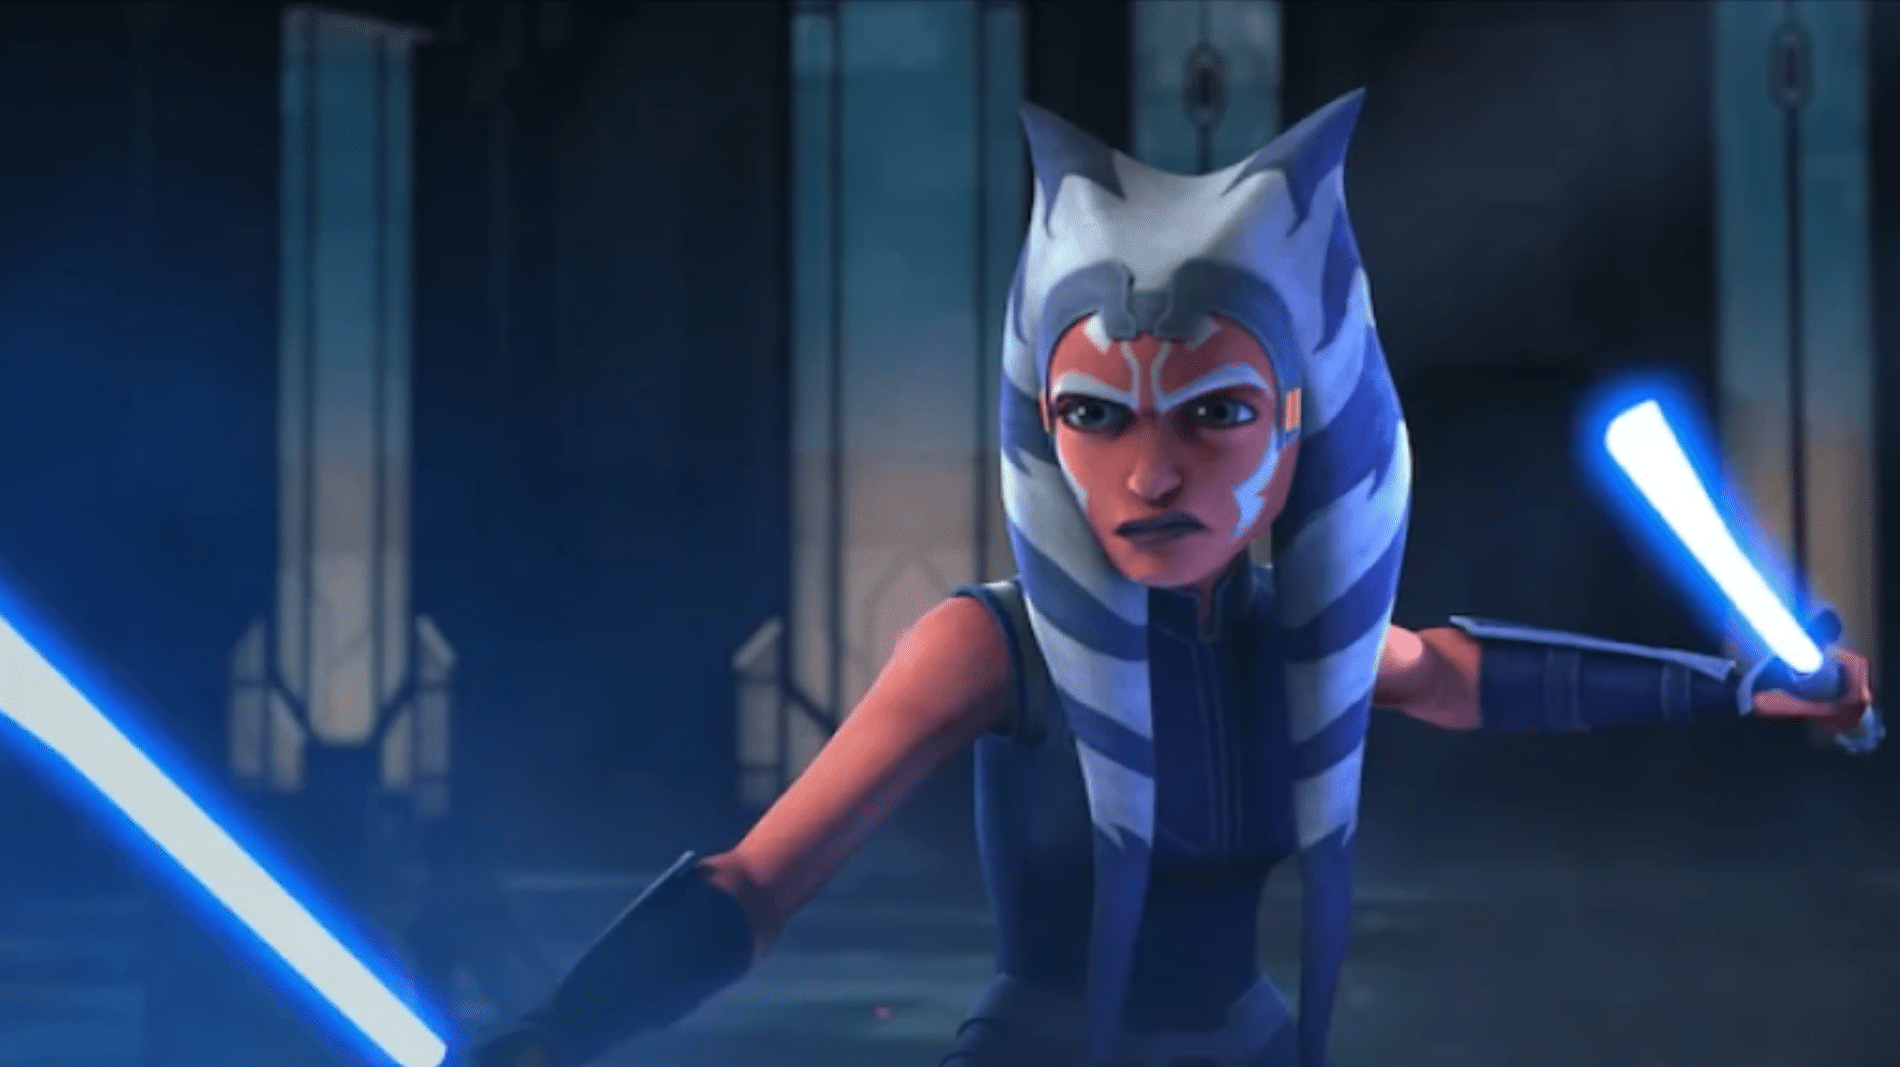 Get Your 'Clone Wars' Ahsoka Tano Lightsaber At Galaxy's Edge This Fall